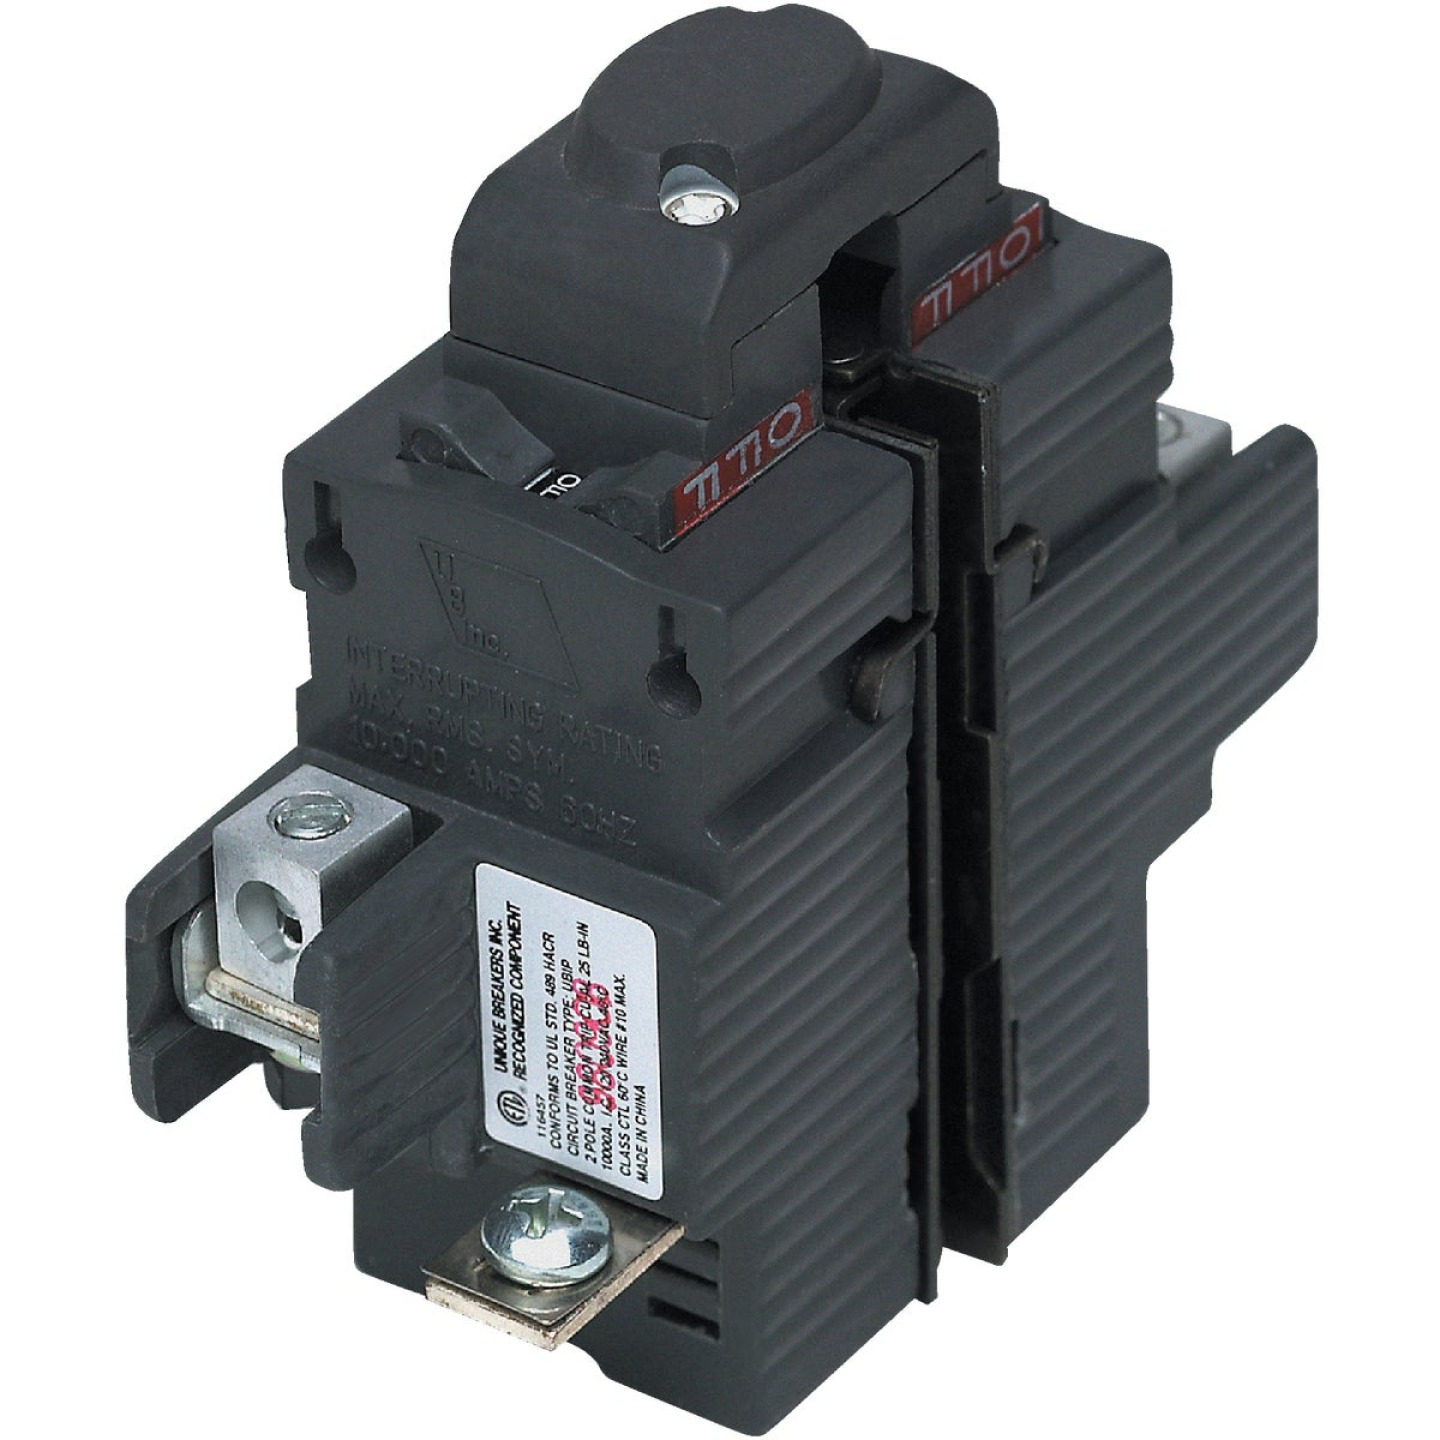 Connecticut Electric 40A Double-Pole Standard Trip Packaged Replacement Circuit Breaker For Pushmatic Image 1